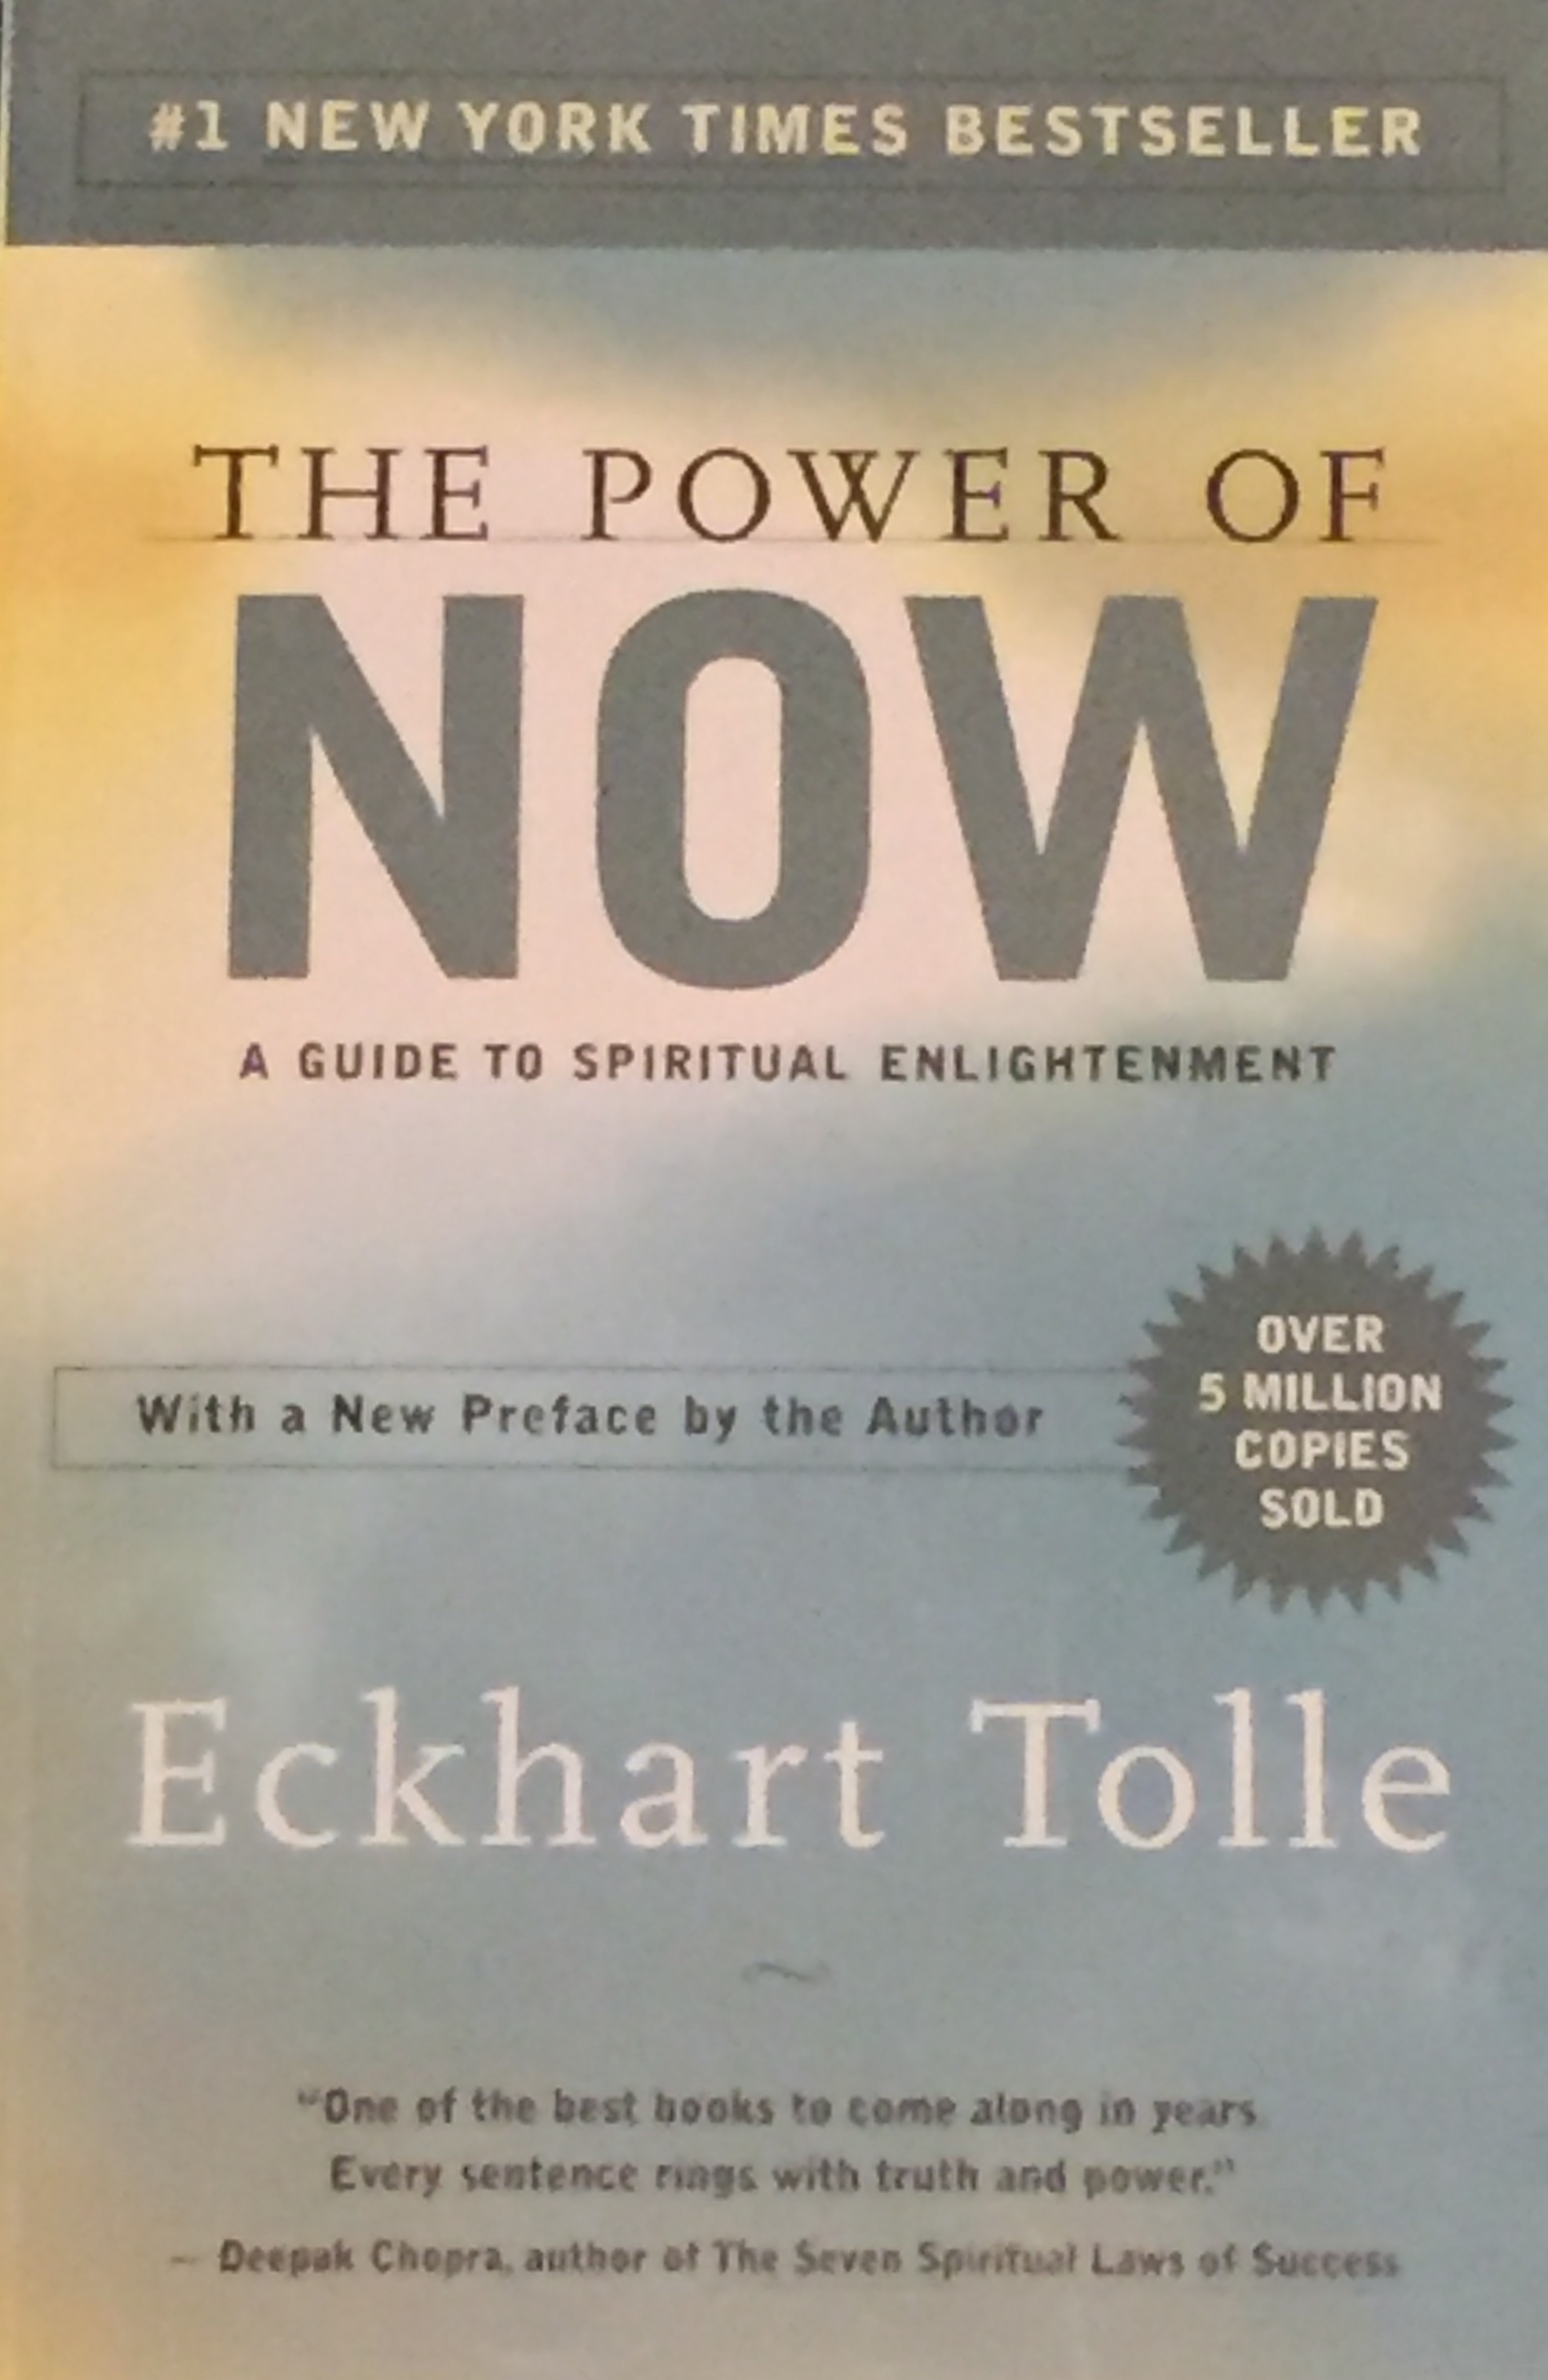 The Power of Now by Eckart Tolled